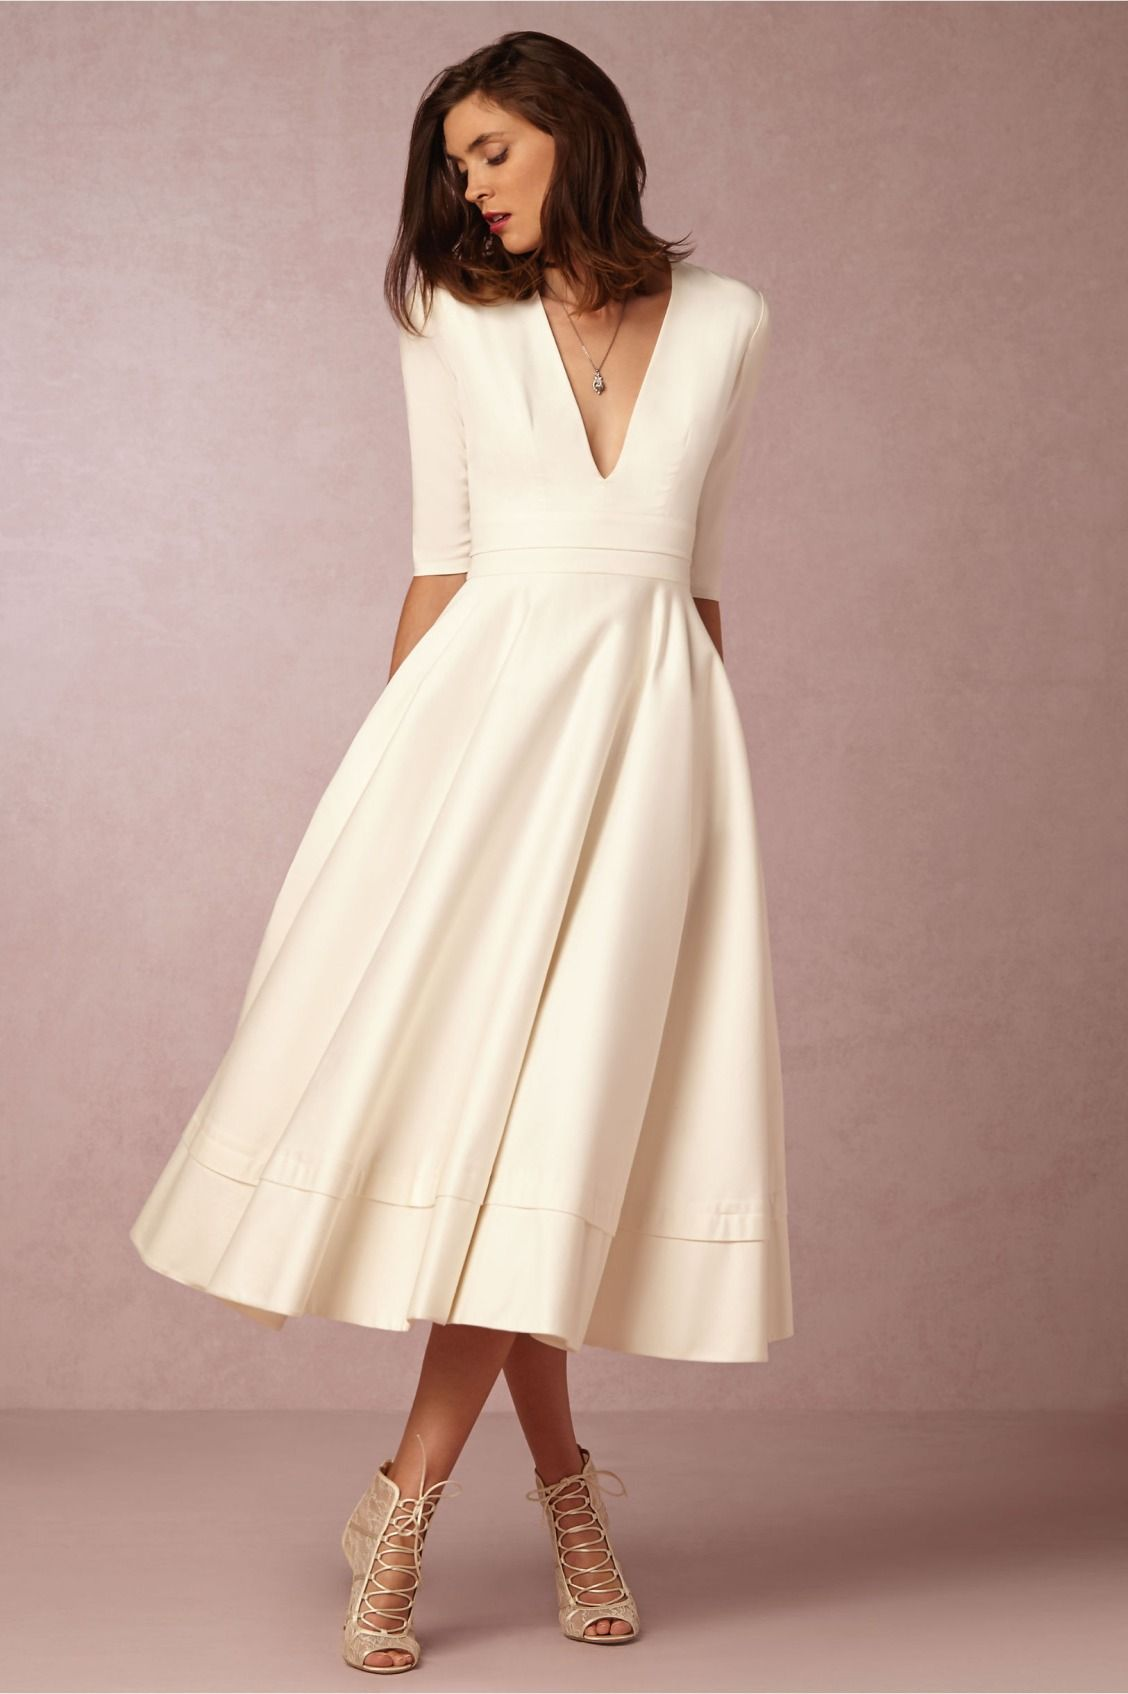 Handmade in france prospere gown from bhldn collection